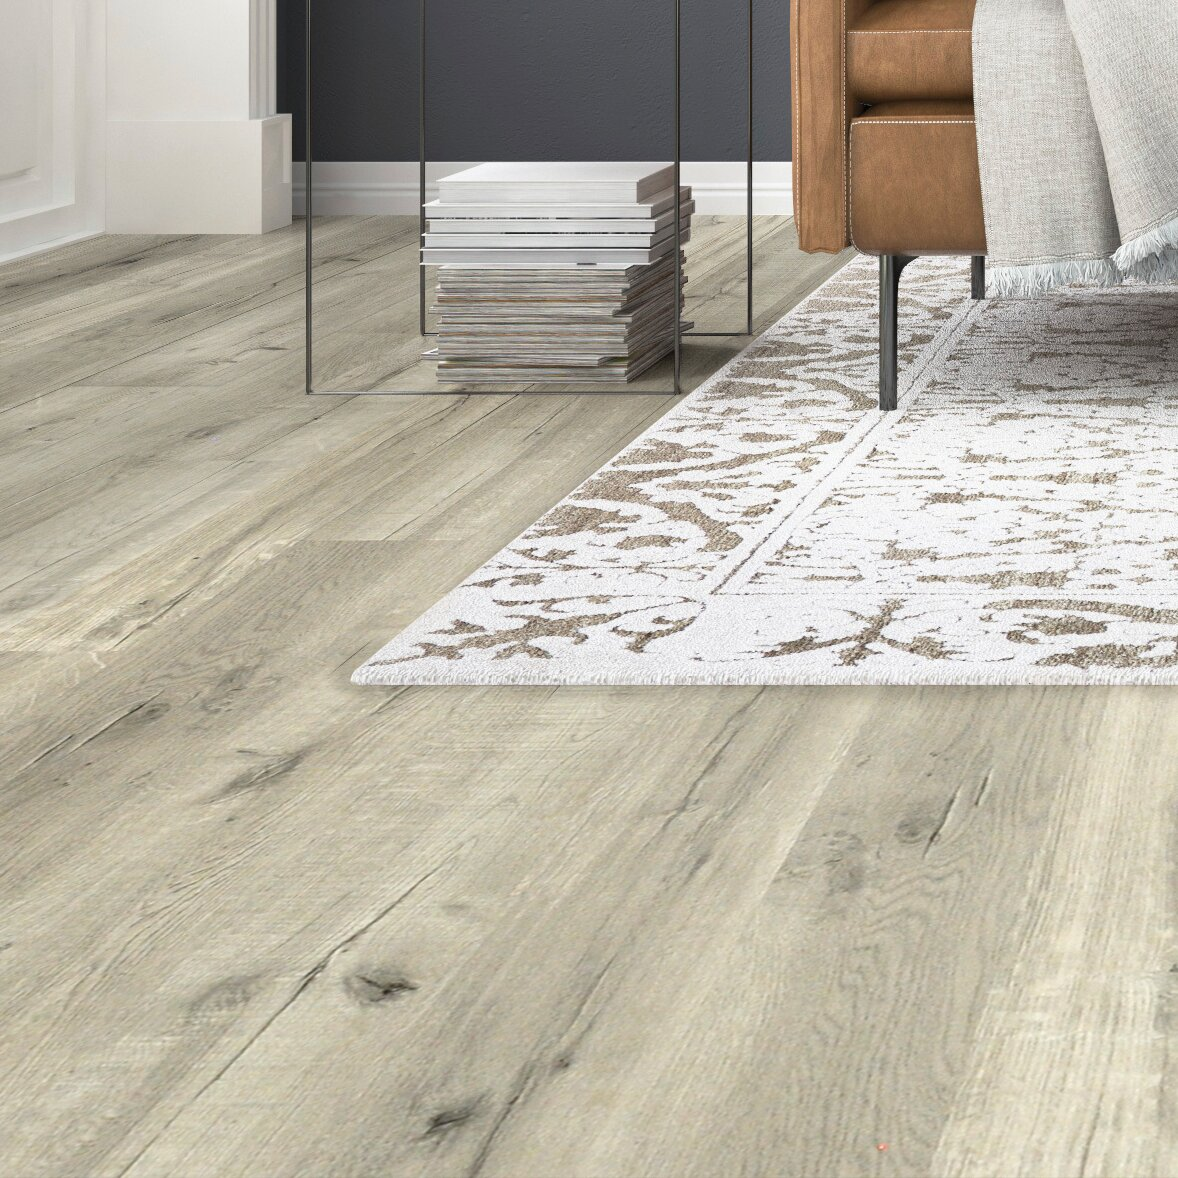 Albero Valley Seaside 7 Quot X 48 Quot X 6 3mm Luxury Vinyl Plank